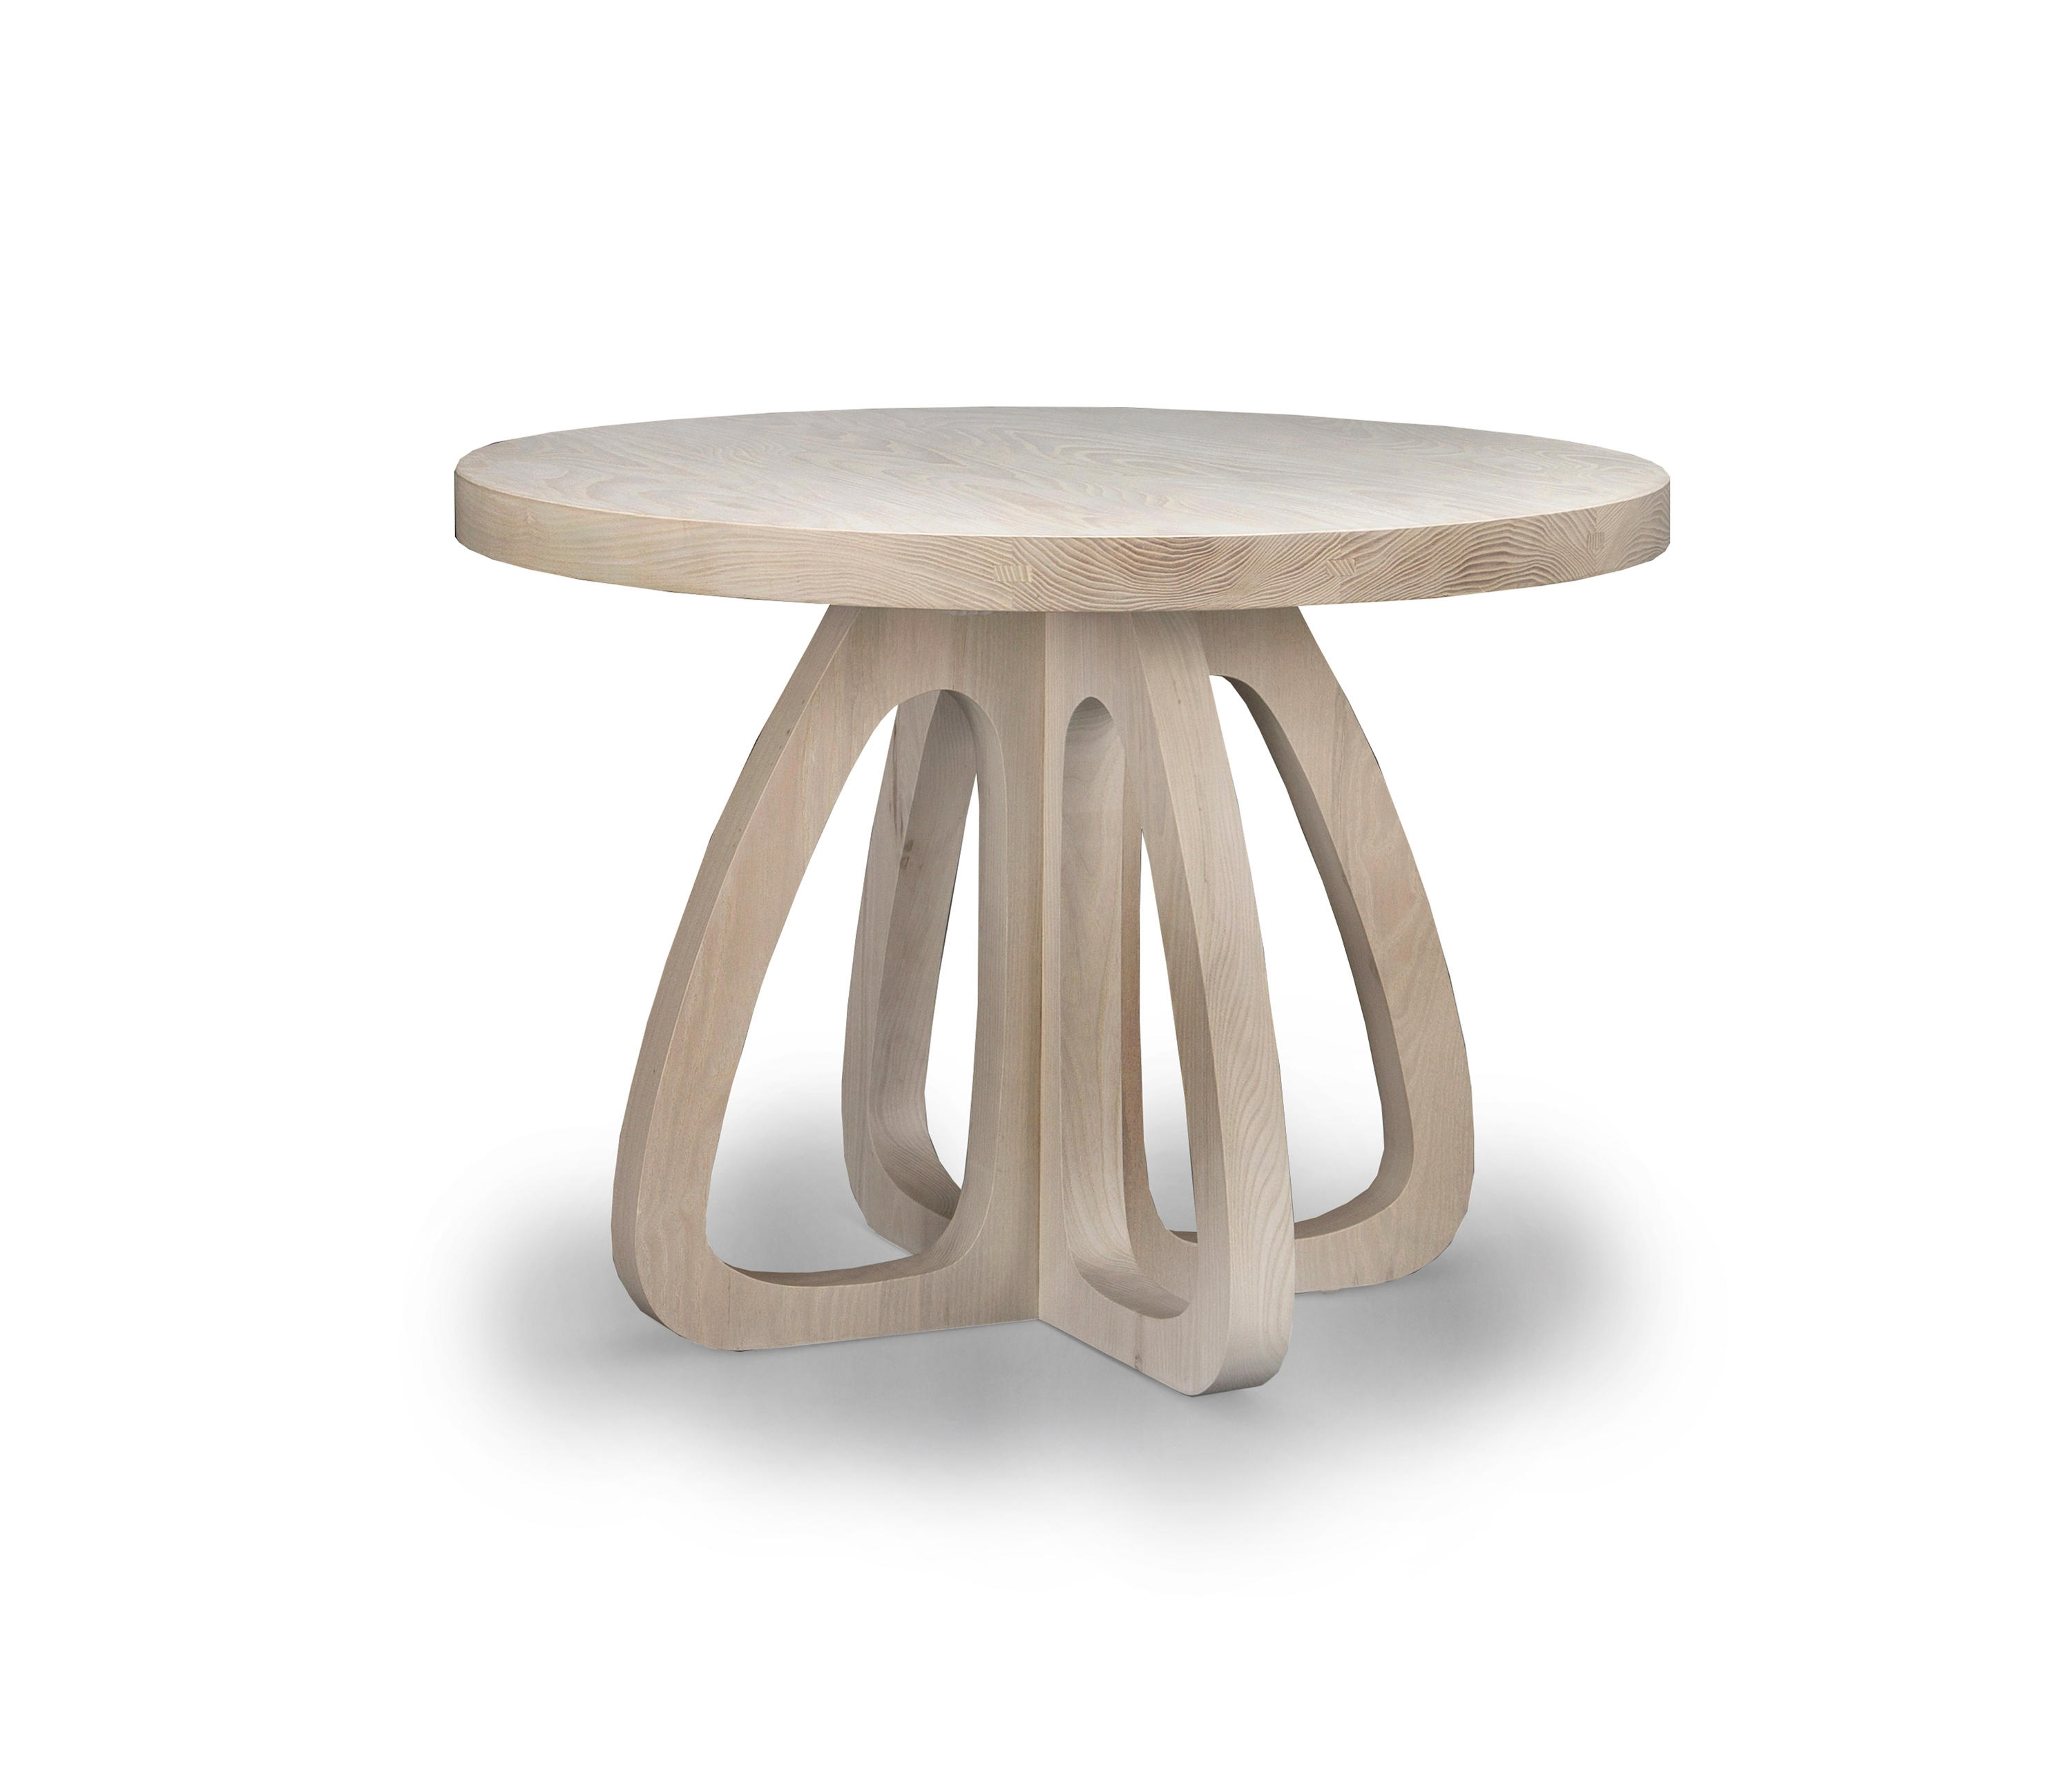 Barcelona Dining Tables With Regard To Popular Barcelona (View 10 of 25)